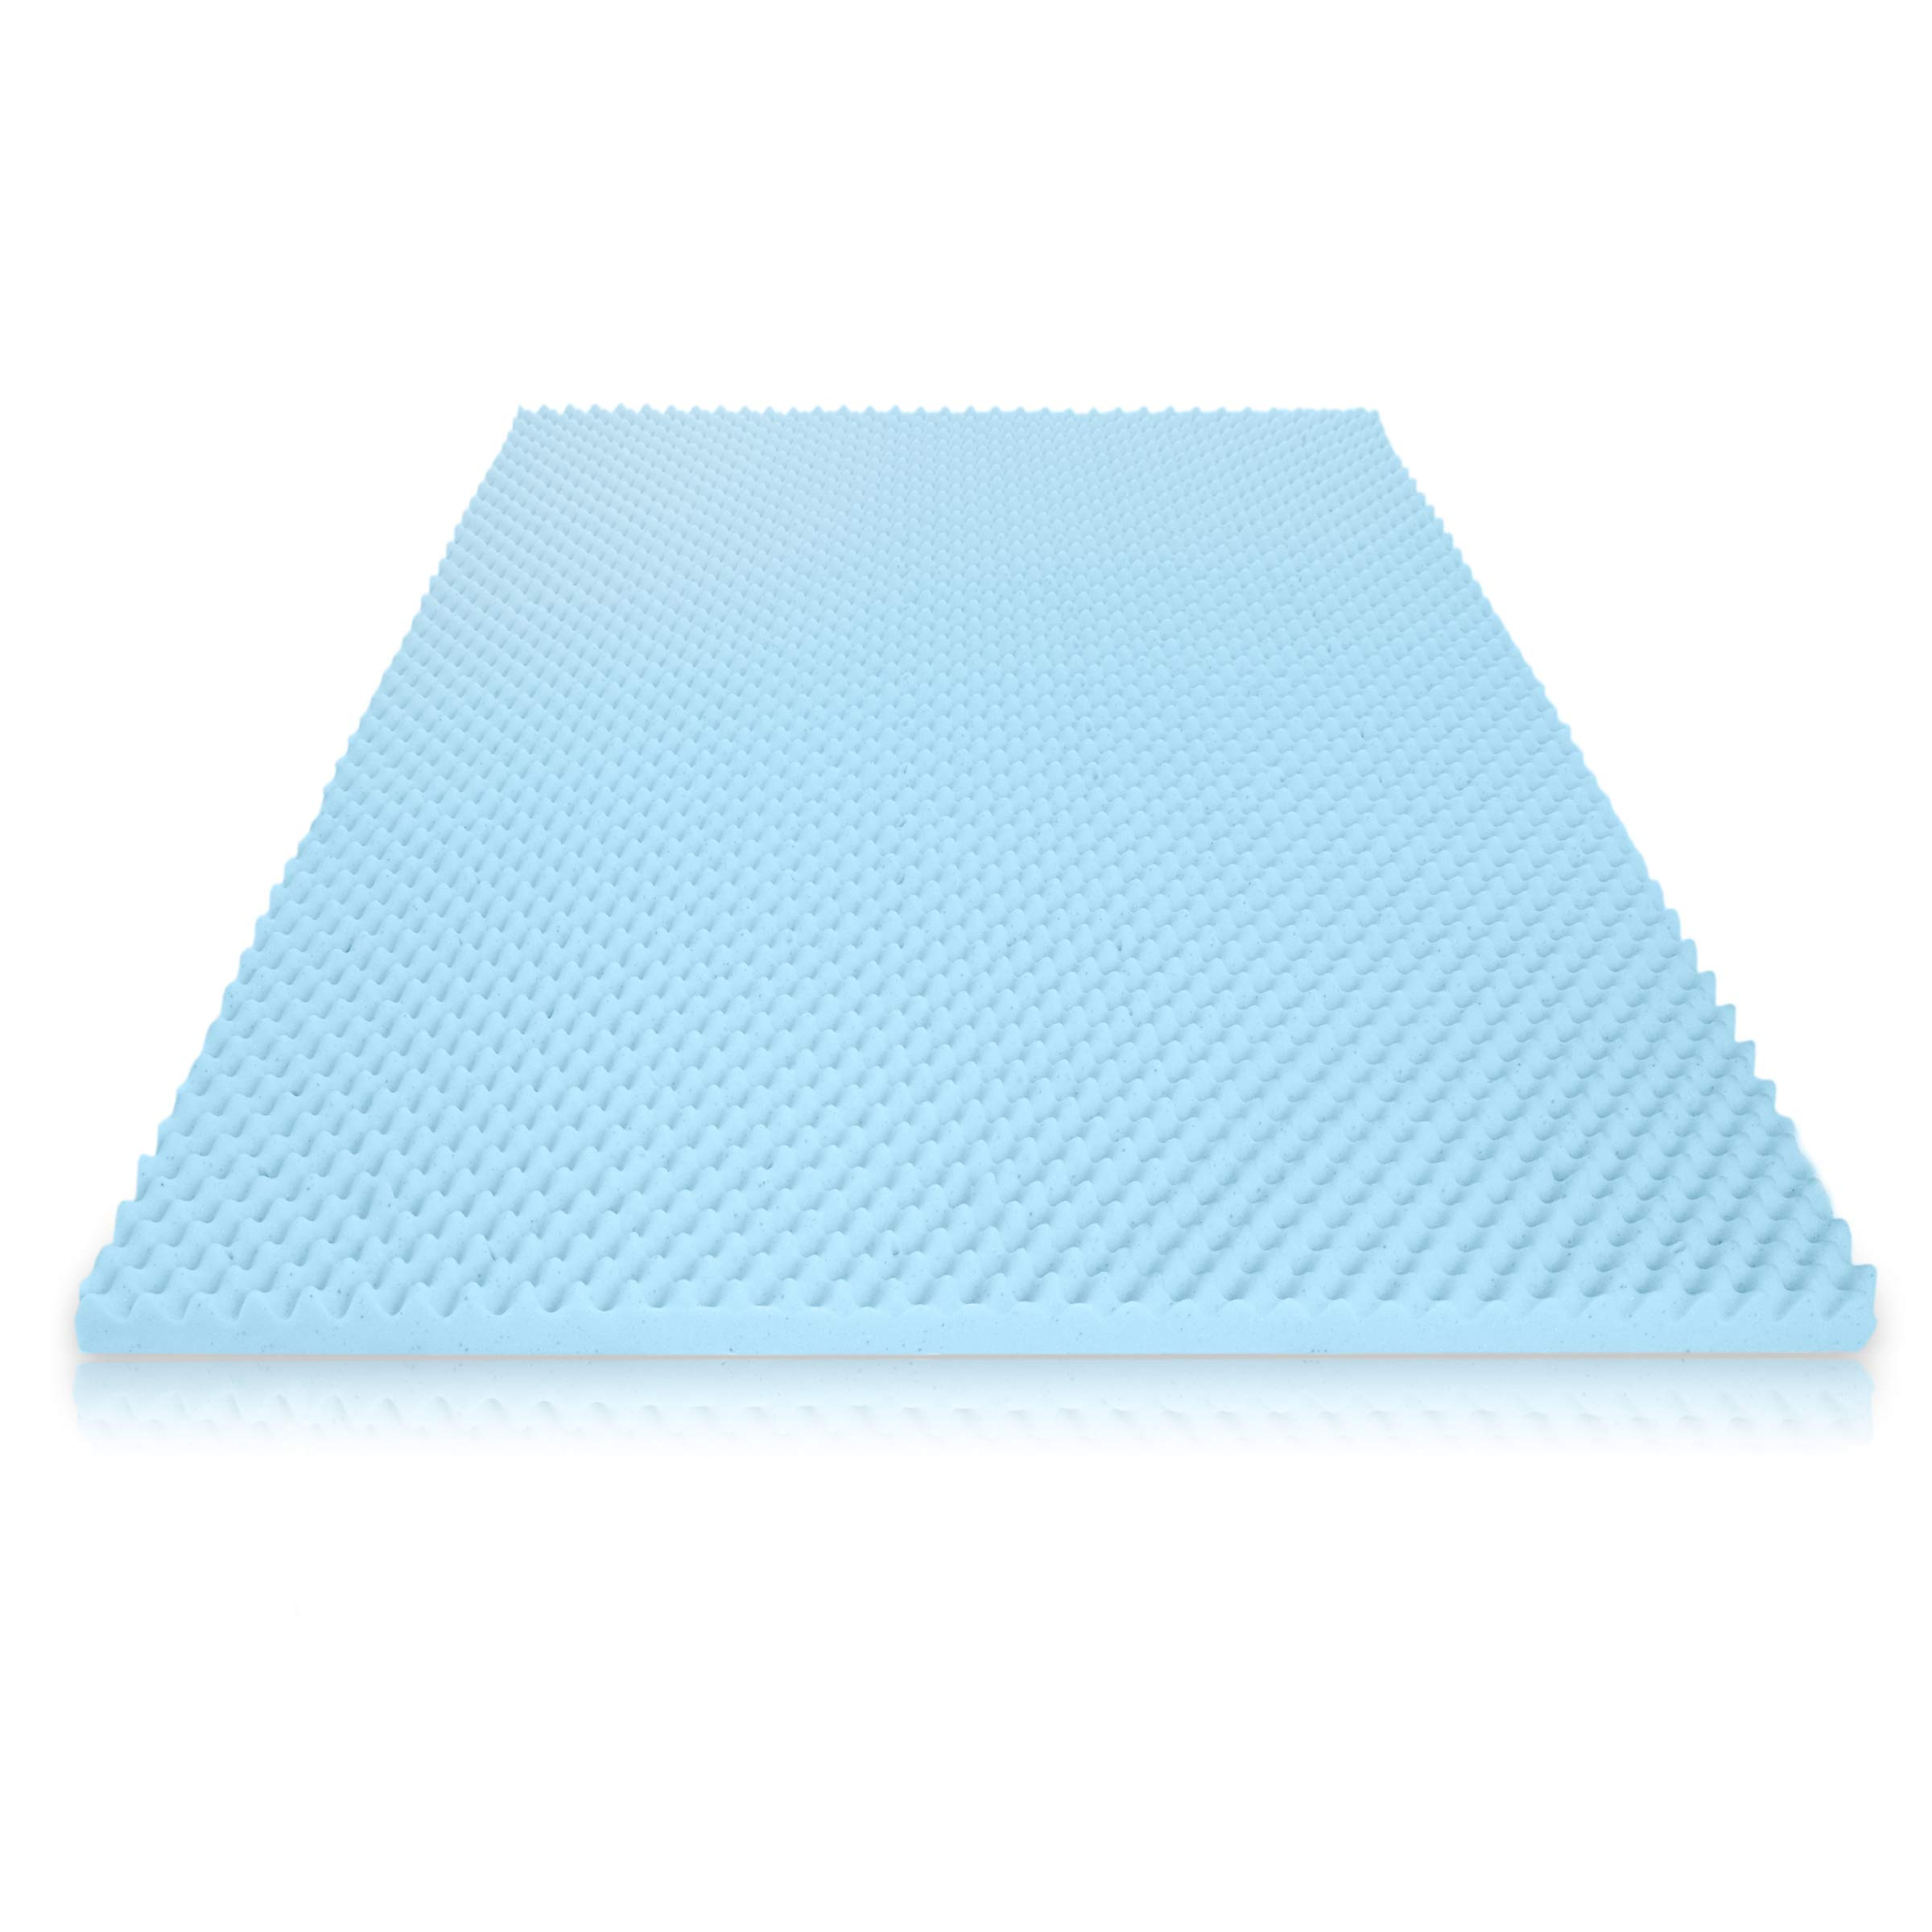 Milliard 2in. Egg Crate Gel Memory Foam Mattress Topper - Queen, Mattress Pad Provides Great Pressure Relief, Gel Infusion Contributes to a Cooler Night Sleep (Queen) by Milliard